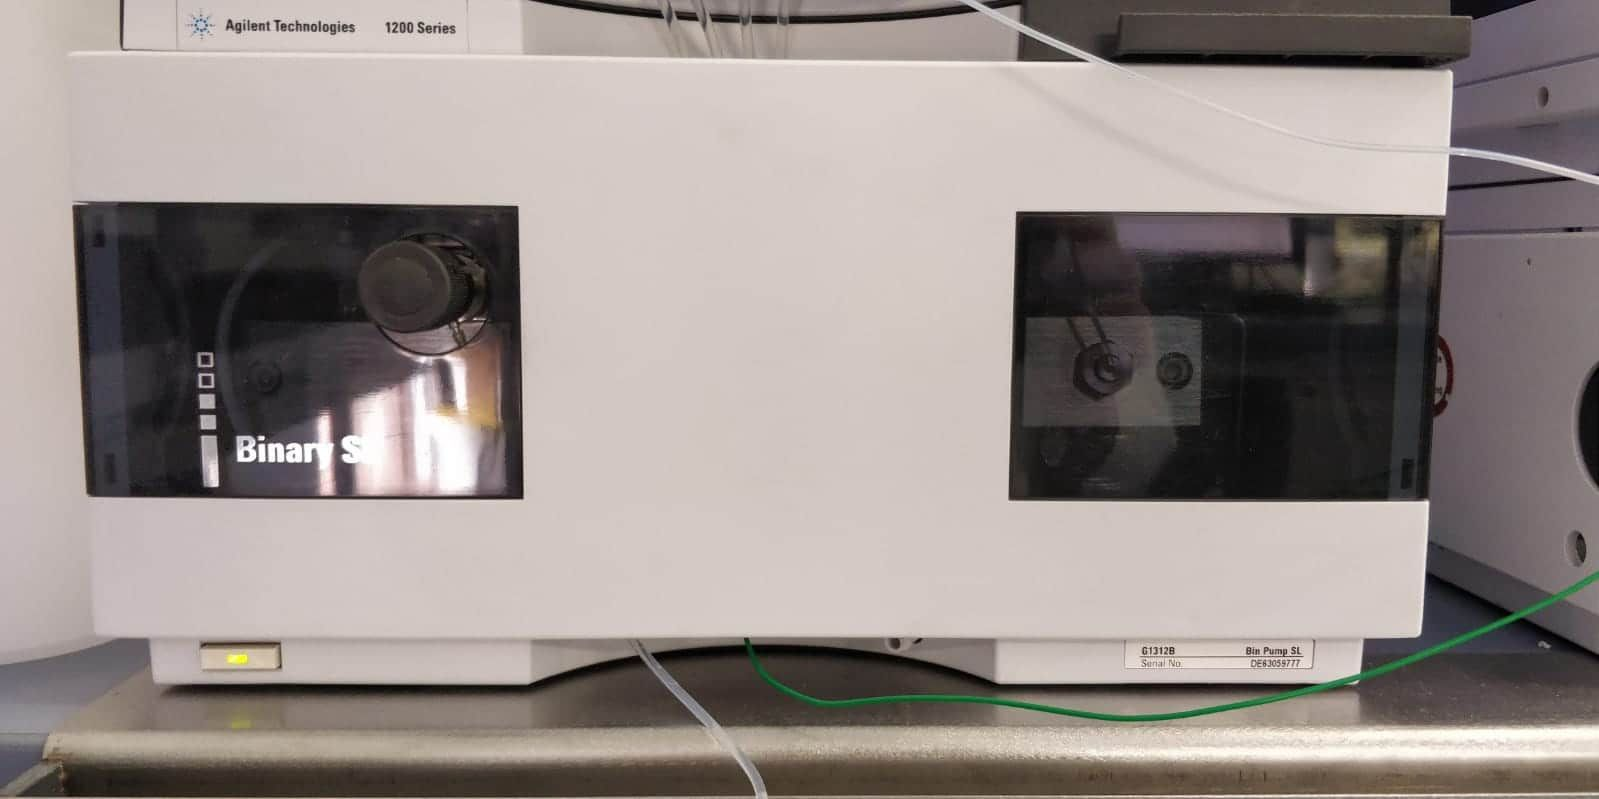 Agilent 1200 Series HPLC System with a 1260 Series VWD